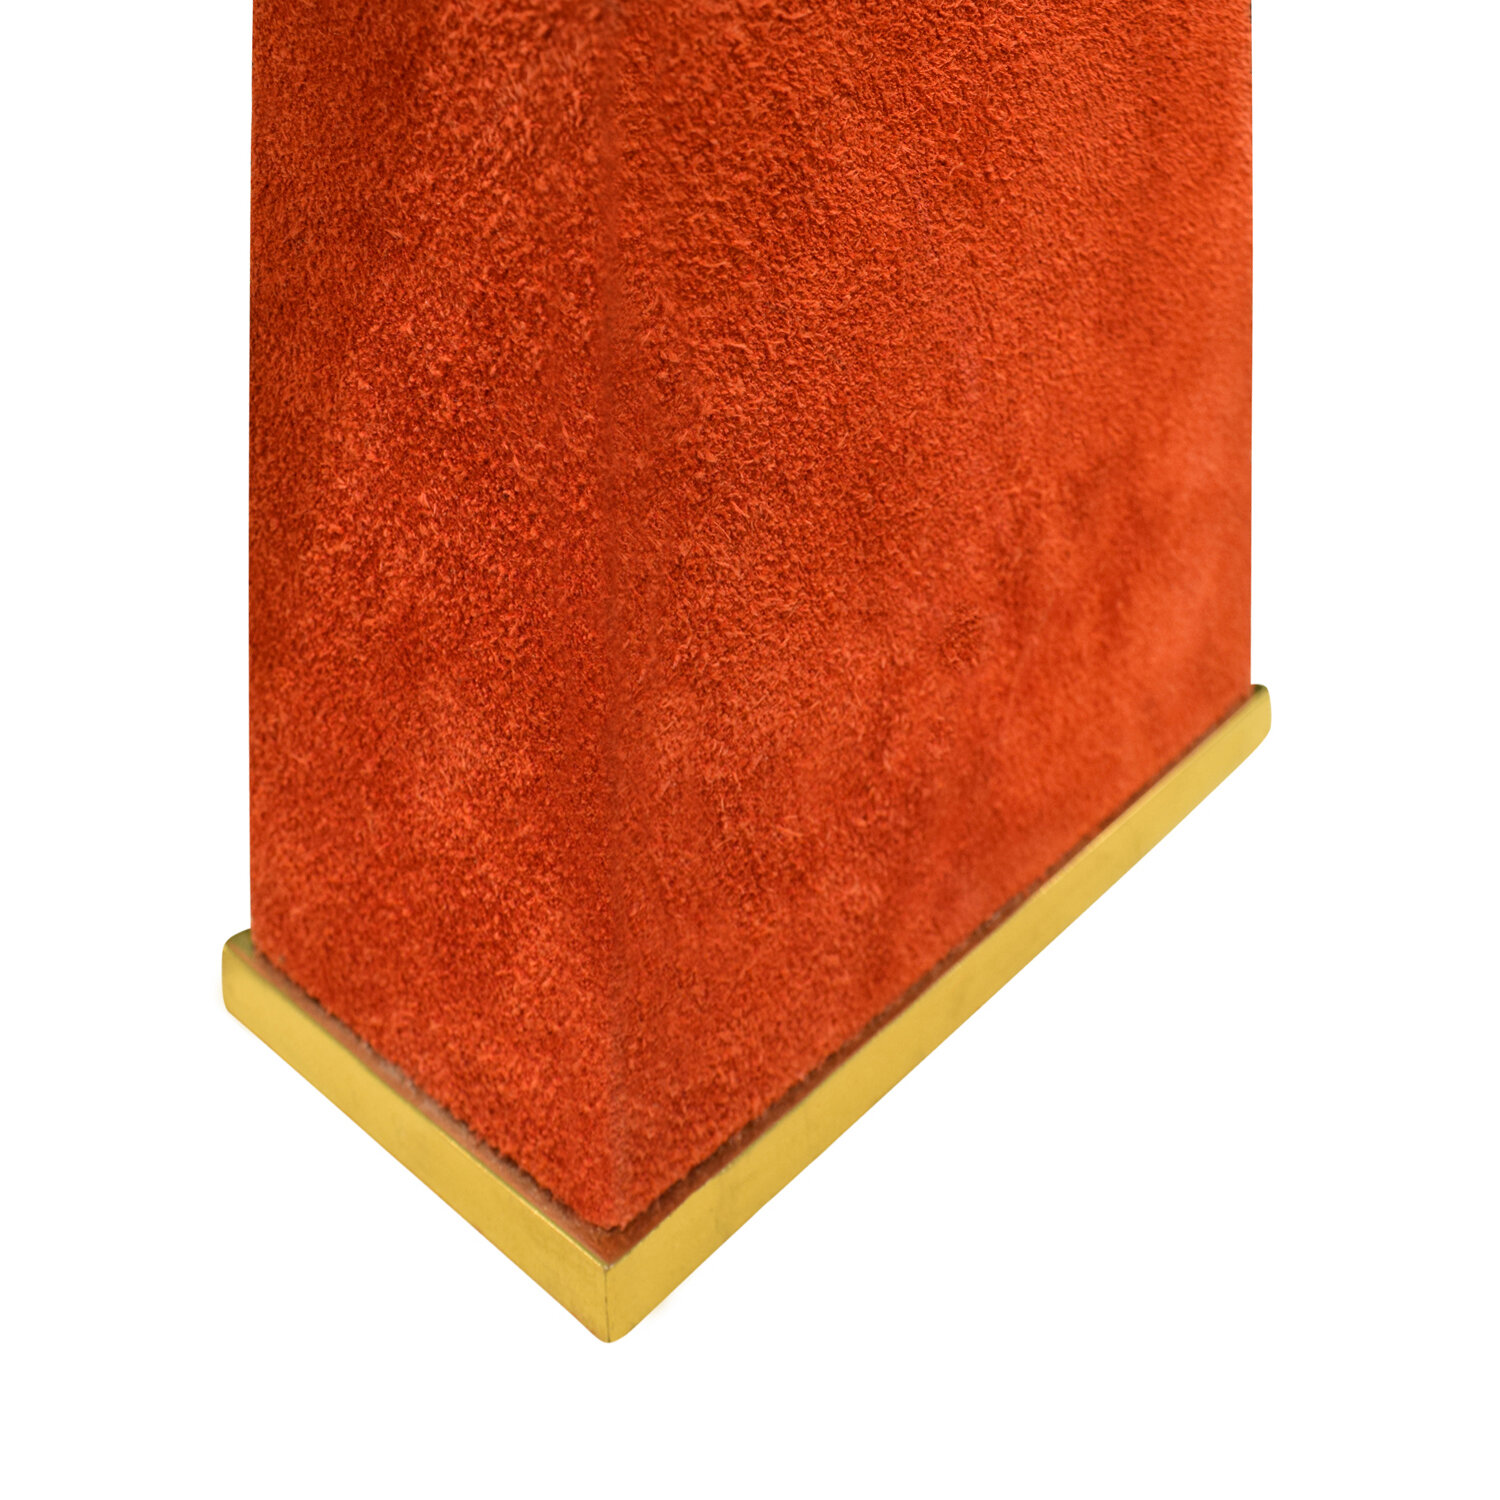 Springer 65 red suede over brass tablelamp290 dtl base2.jpg